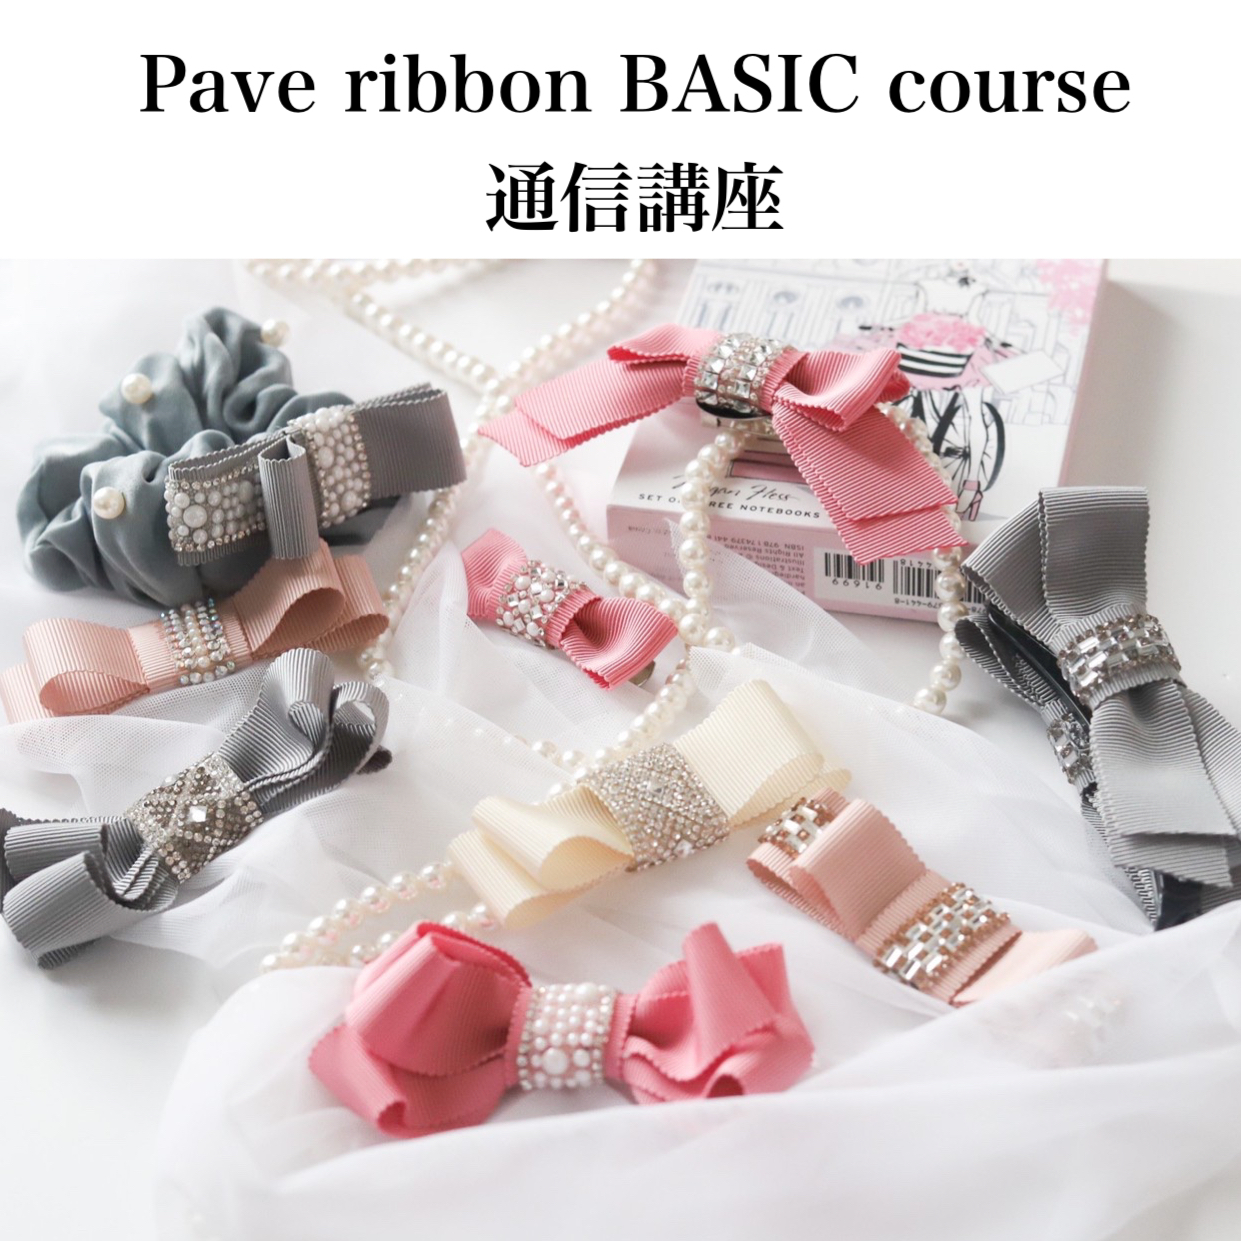 【Pave ribbon BASIC 通信講座】